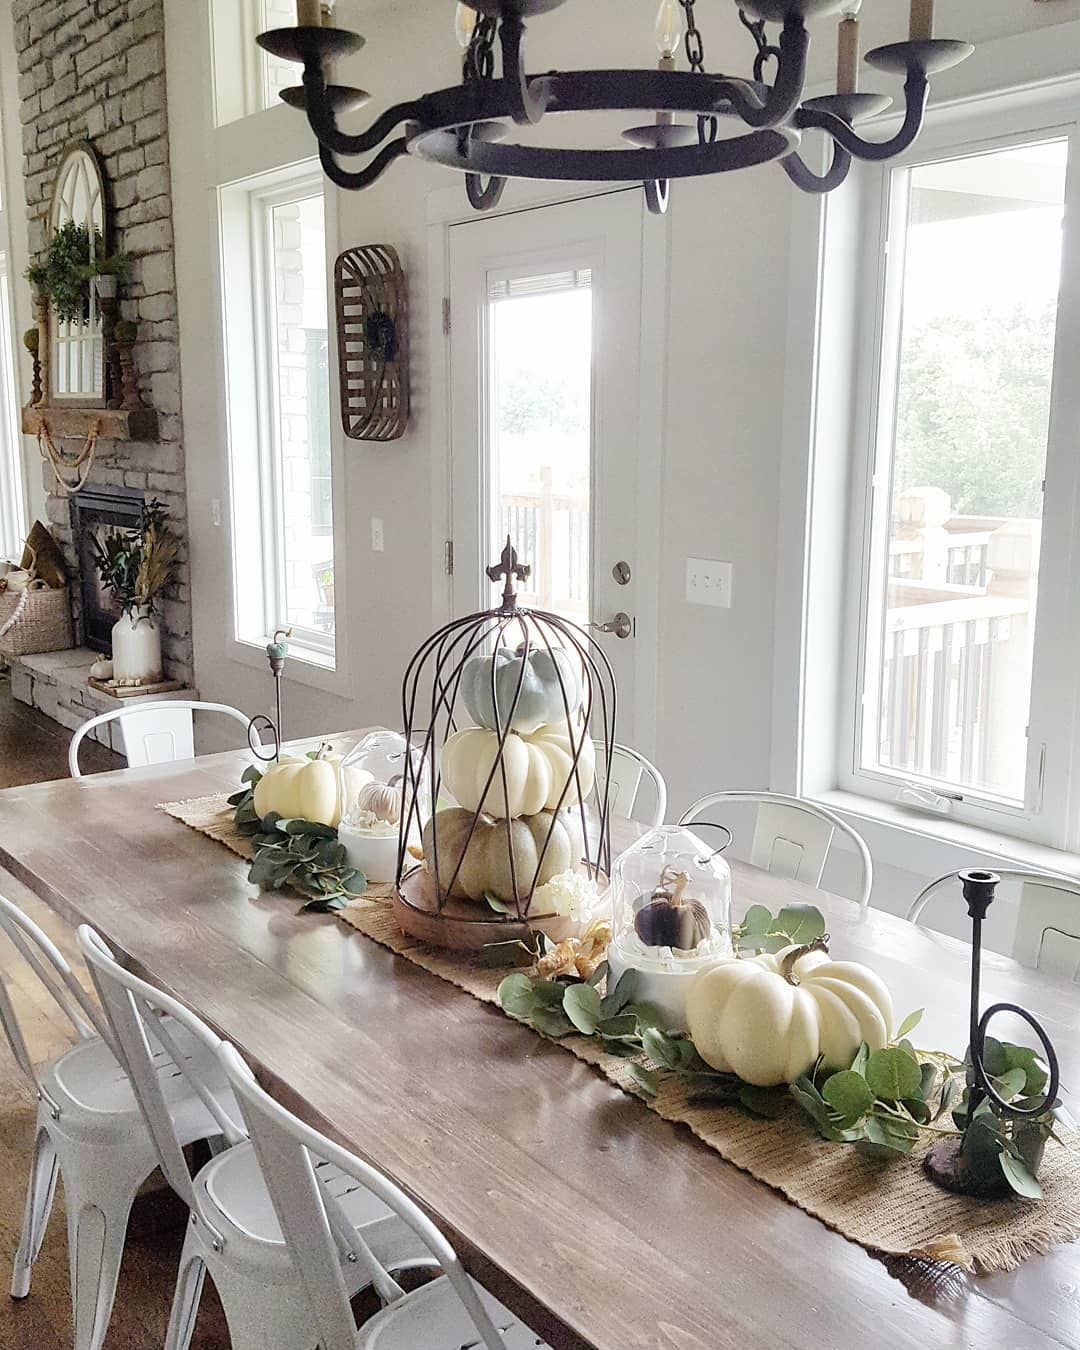 Fall Tablescape Pumpkins Neutral Fall Decor Farmhouse Table Farmhouse Table Decor Neutral Fall Decor Farmhouse Table Centerpieces